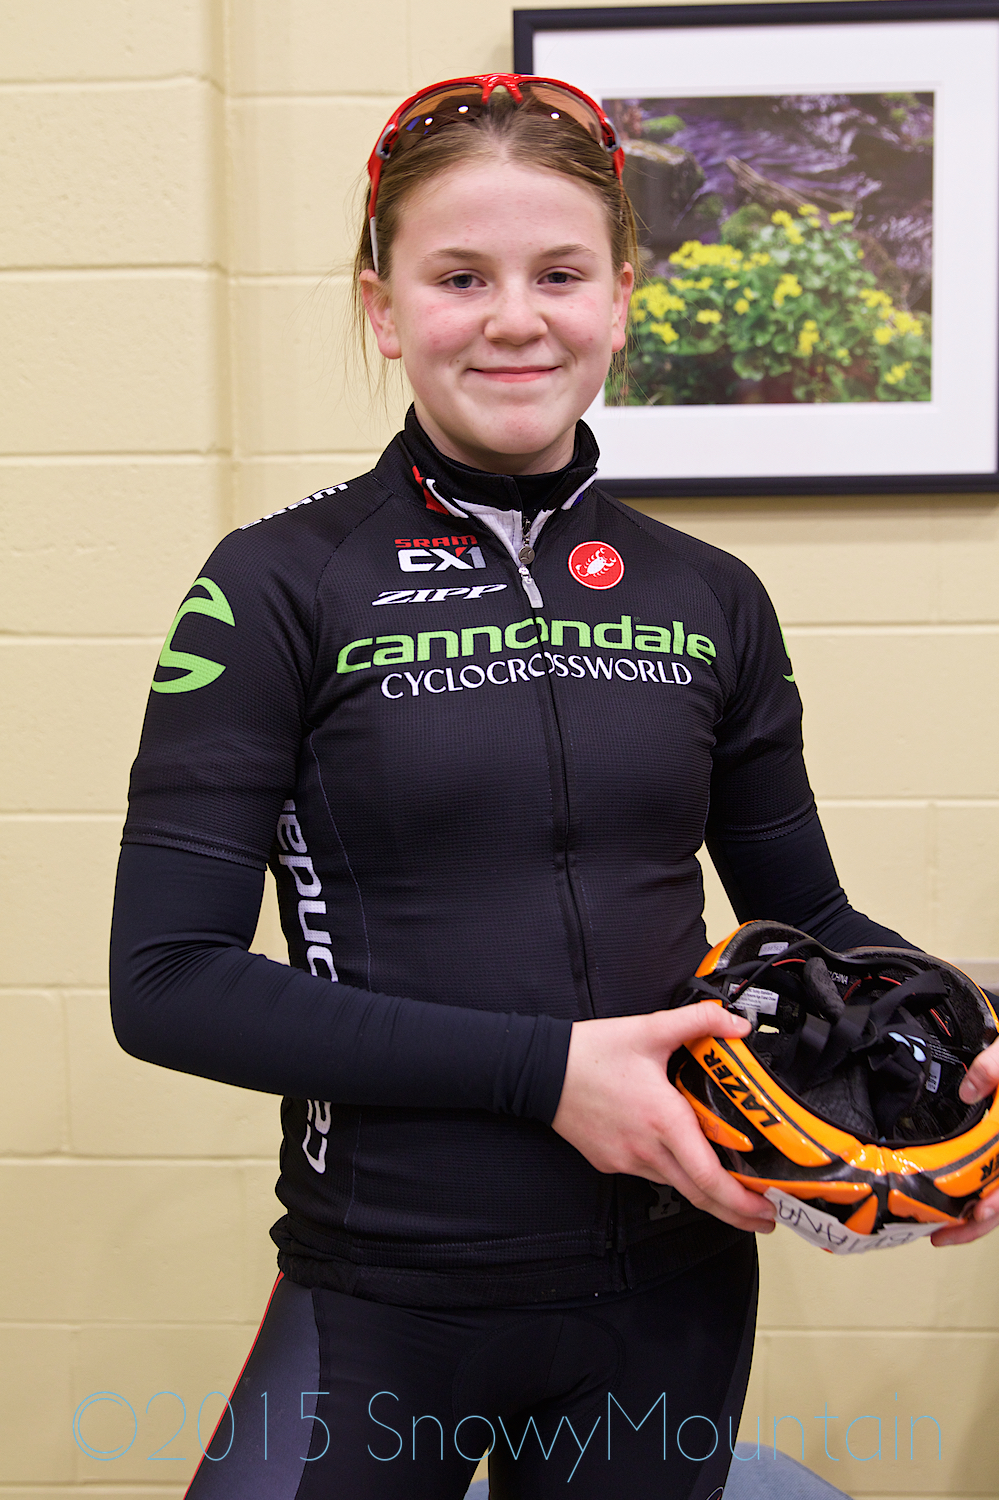 Brianna Urban of ABD Cycling Club went on to win her category the next day.